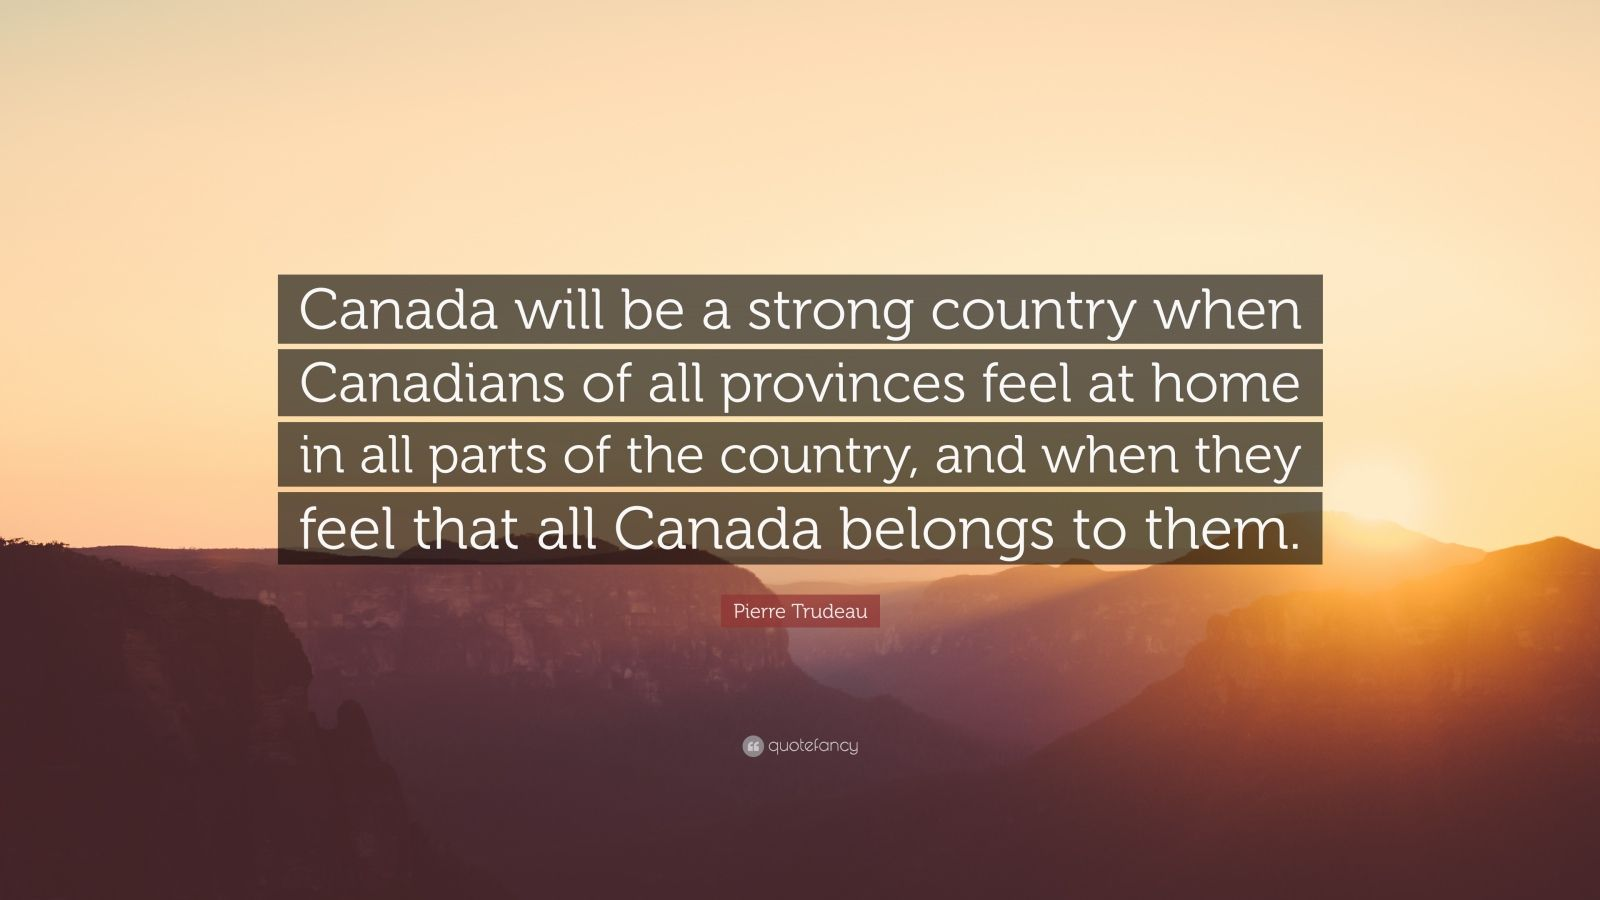 Is Canada Part of the United States? | Reference.com